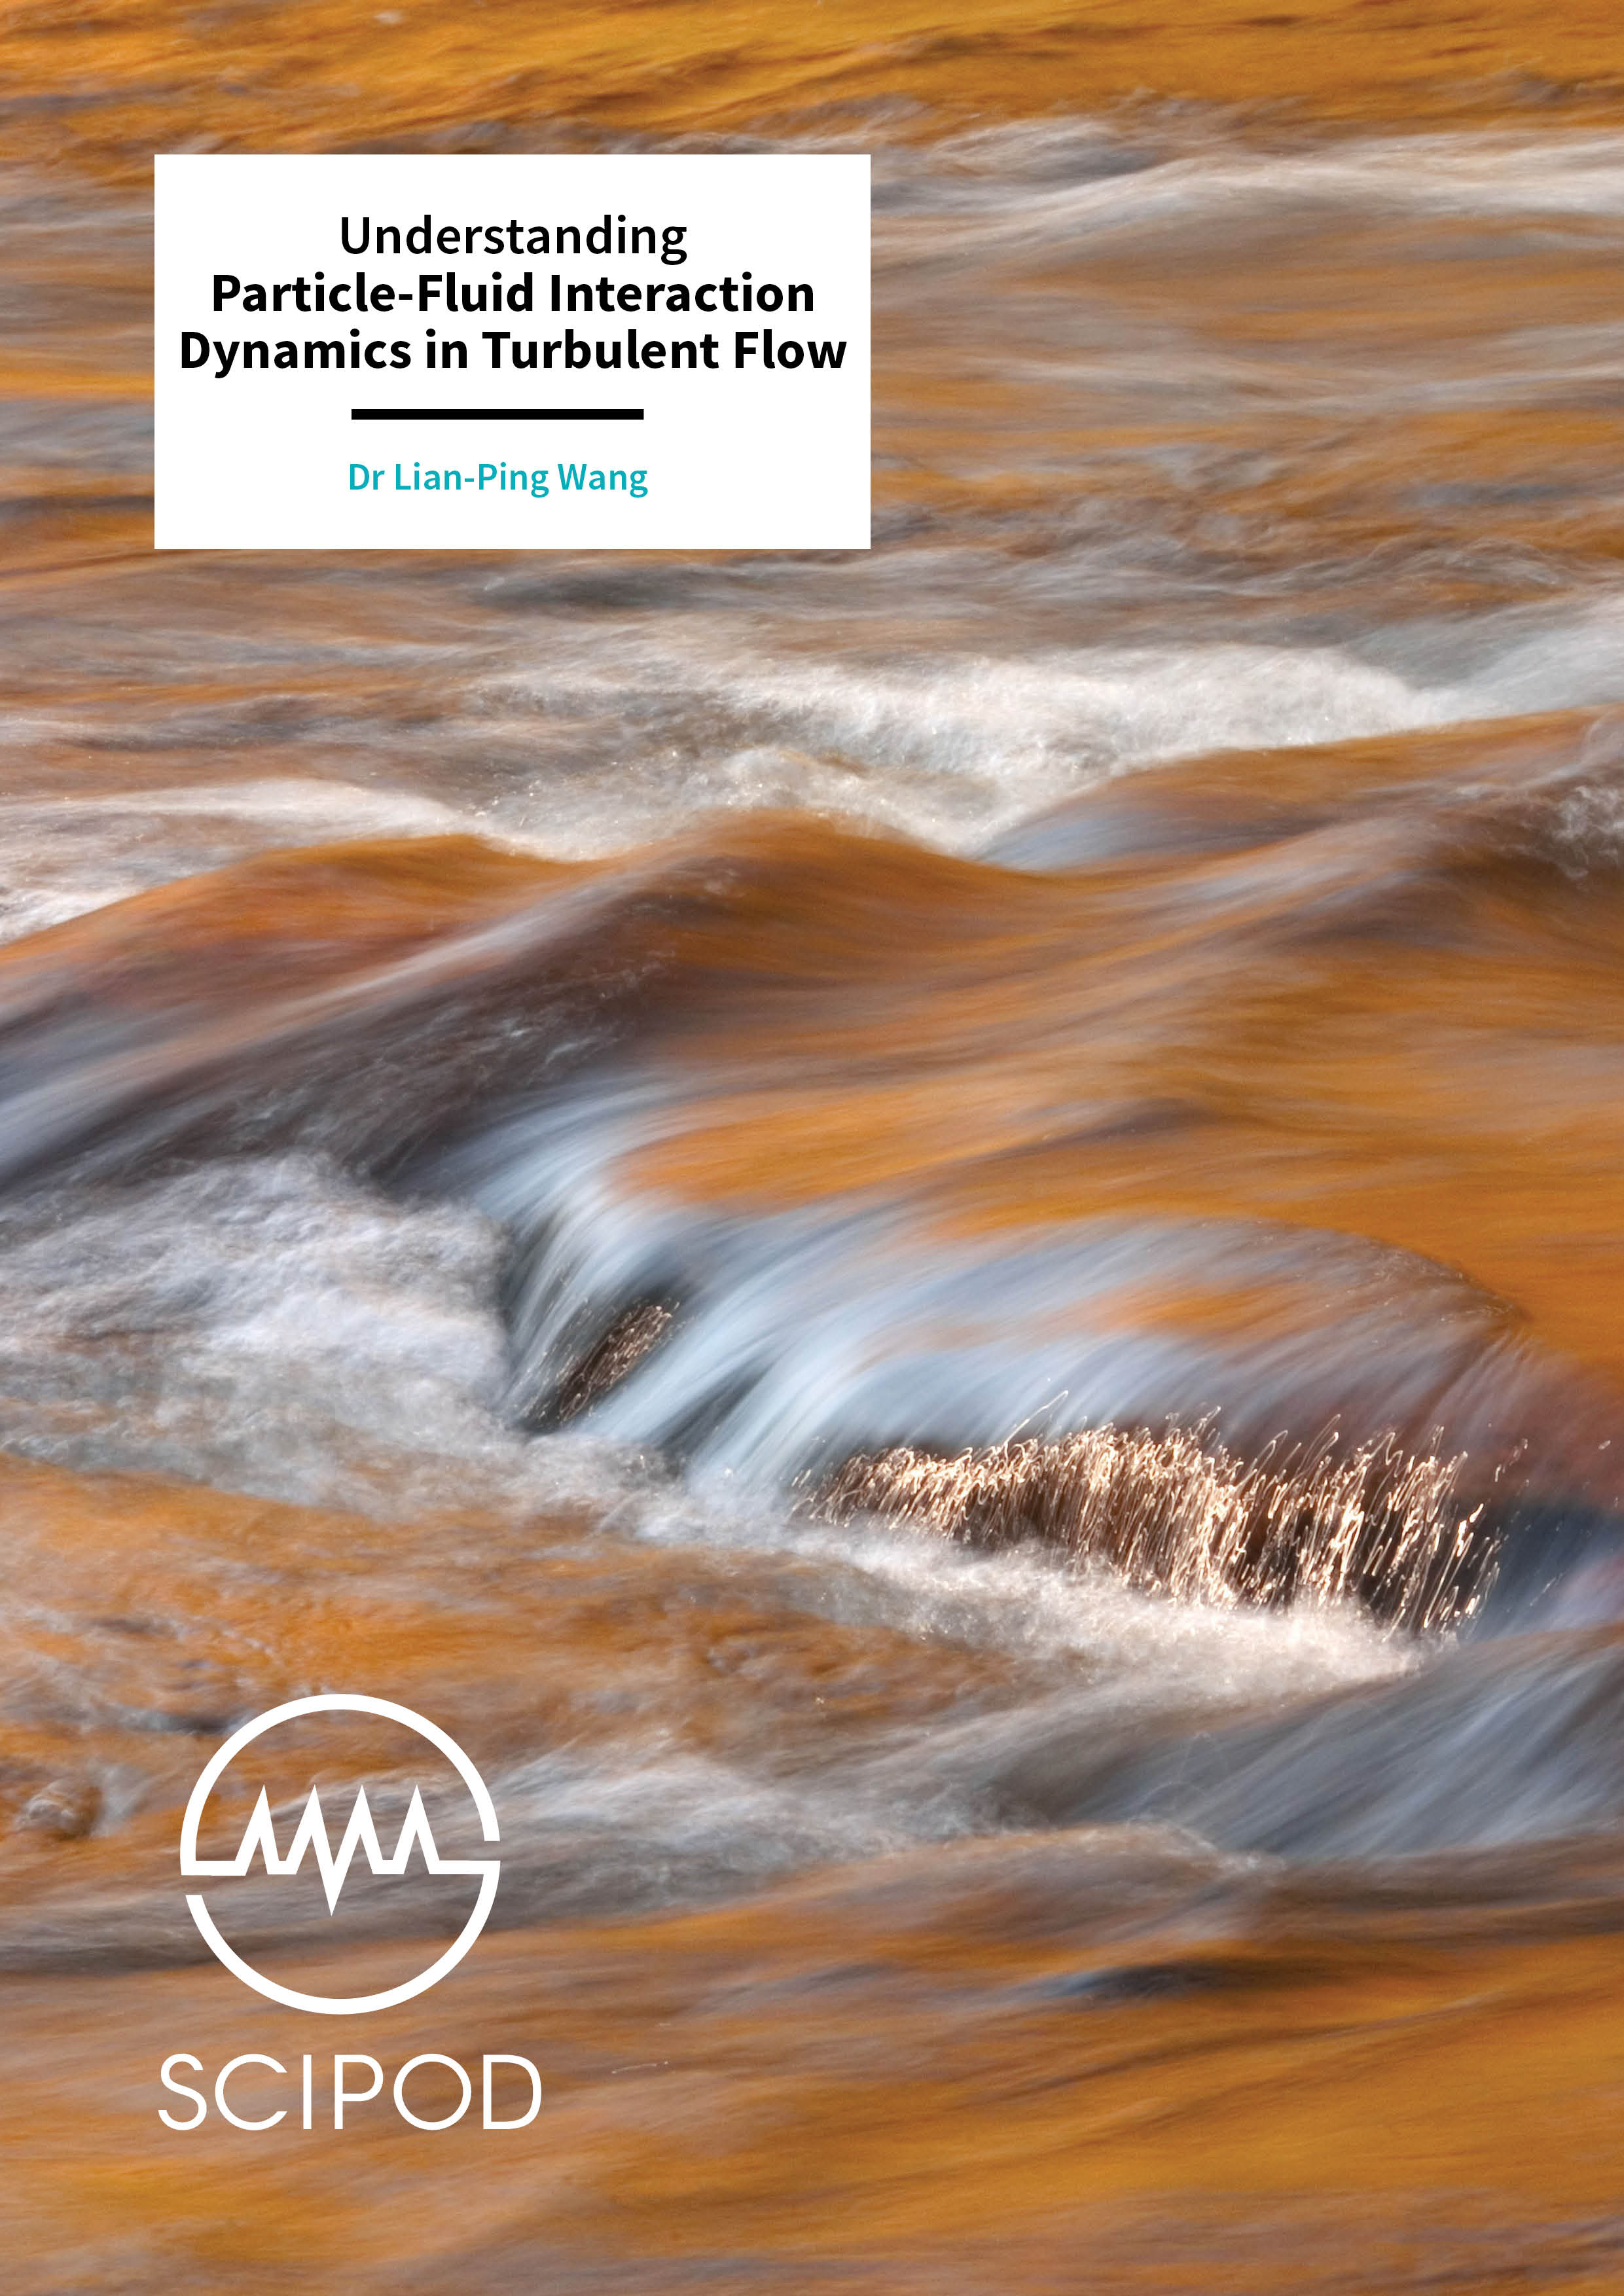 Understanding Particle-Fluid Interaction Dynamics in Turbulent Flow – Dr Lian-Ping Wang, University of Delaware